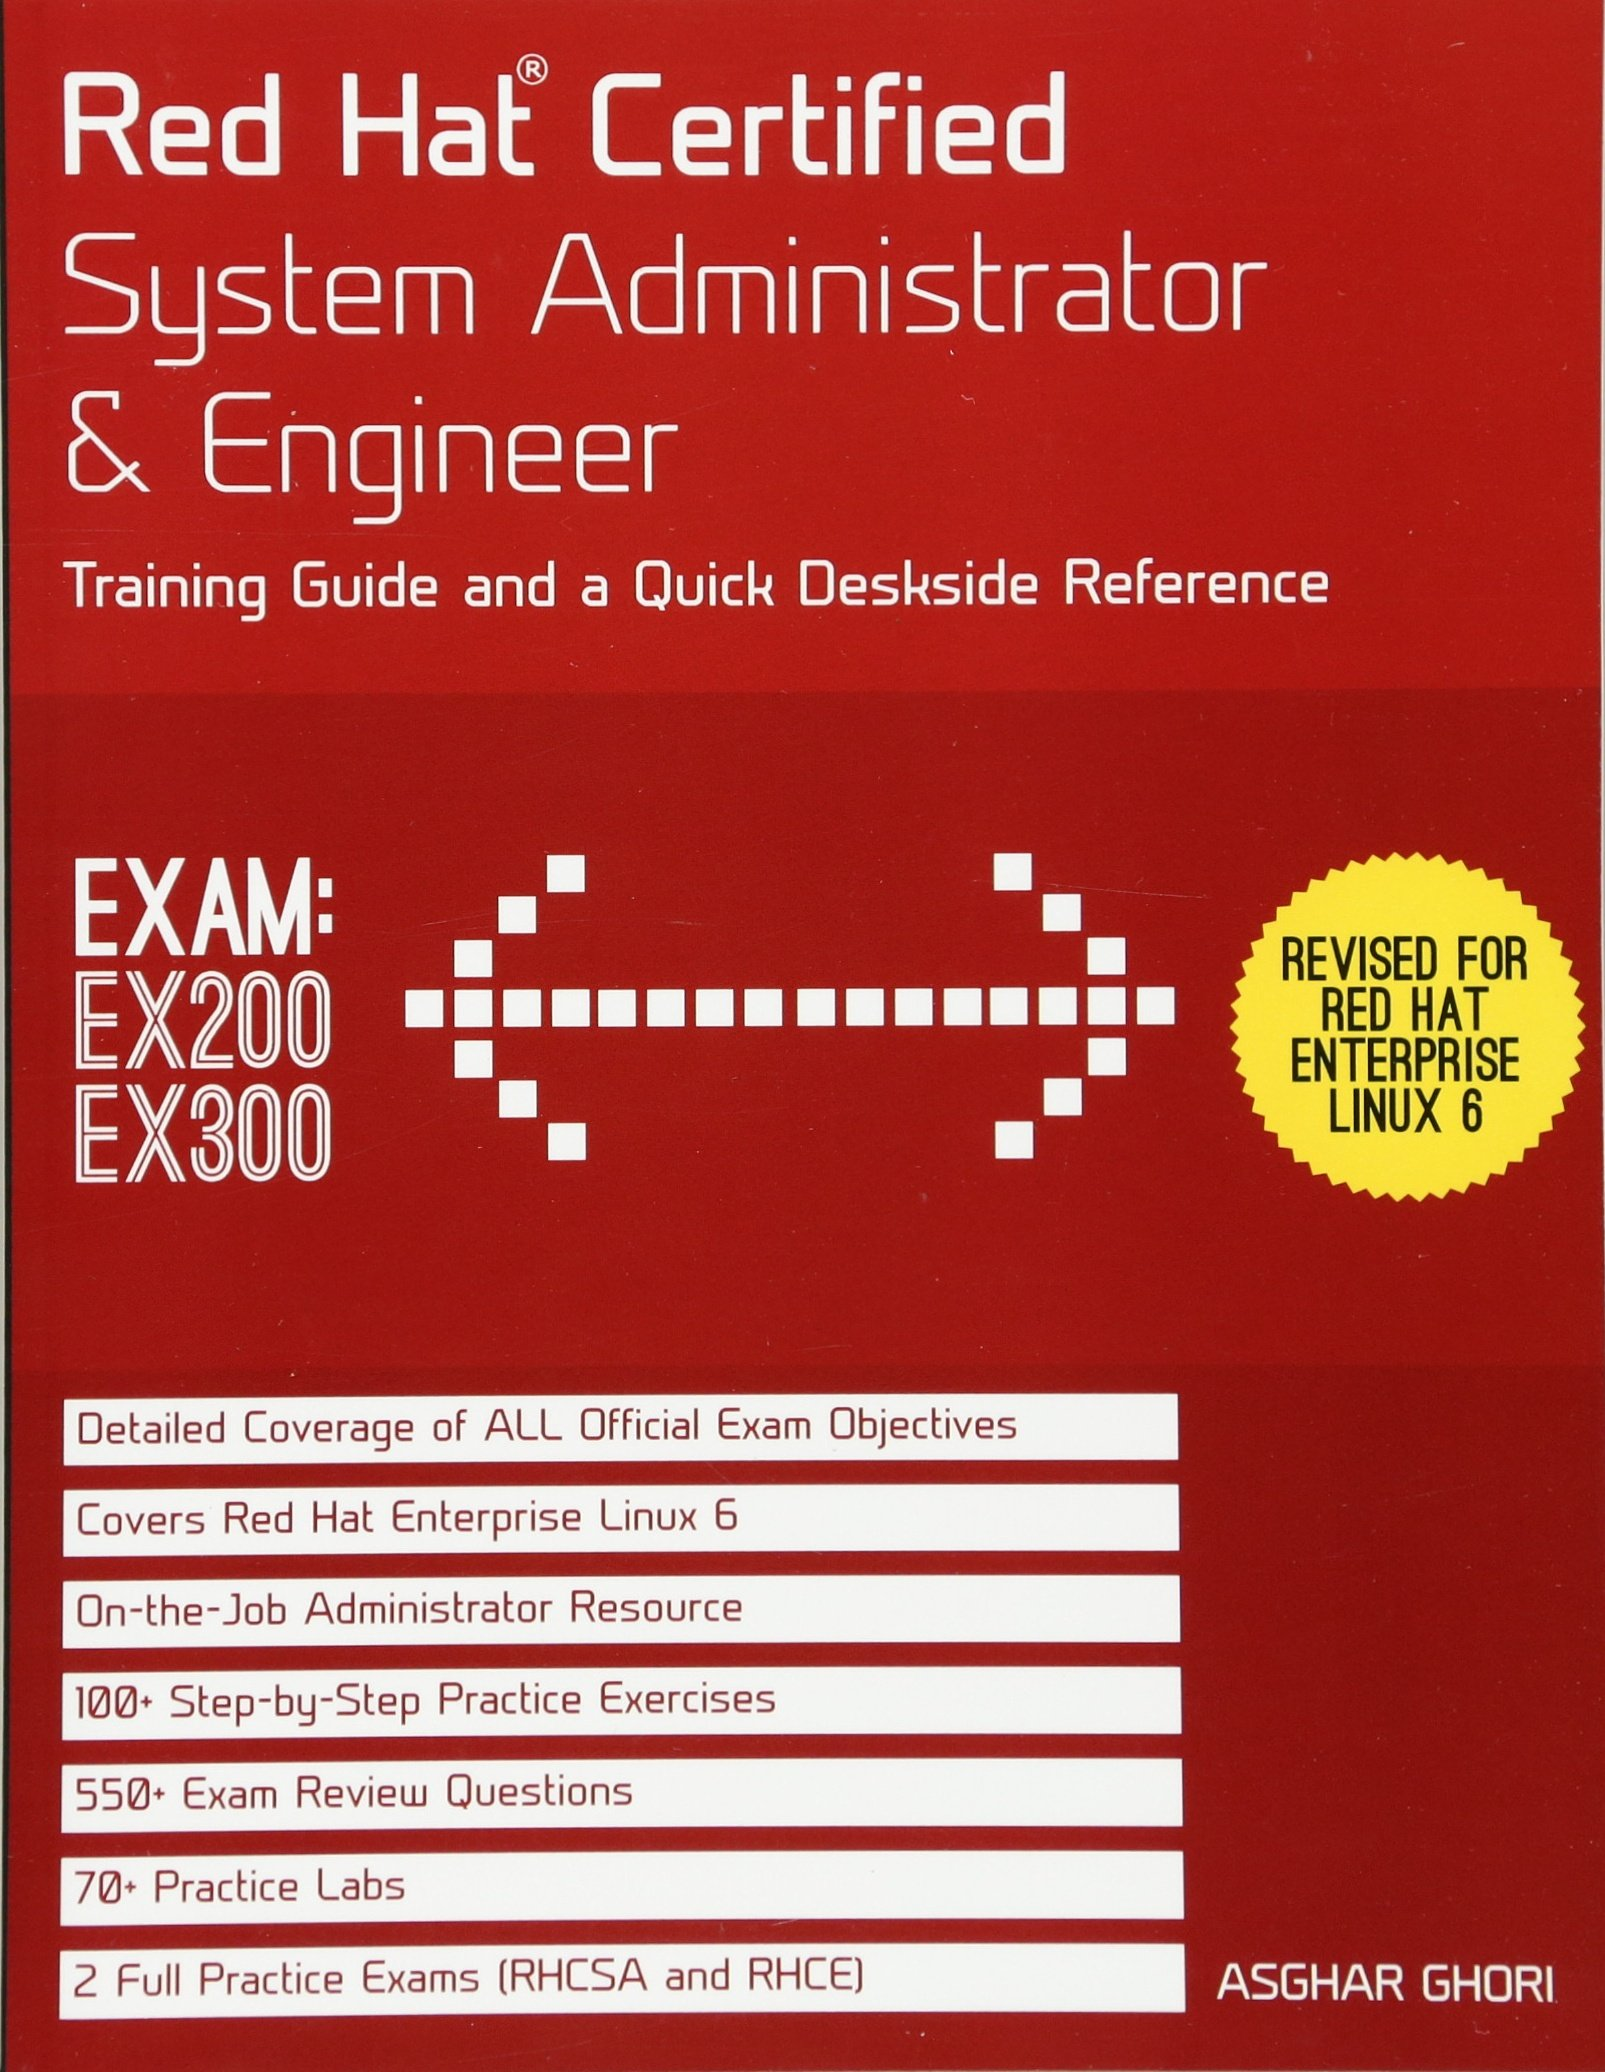 Red hat certified system administrator engineer training guide and a quick deskside reference exams ex200 ex300 amazon co uk asghar ghori